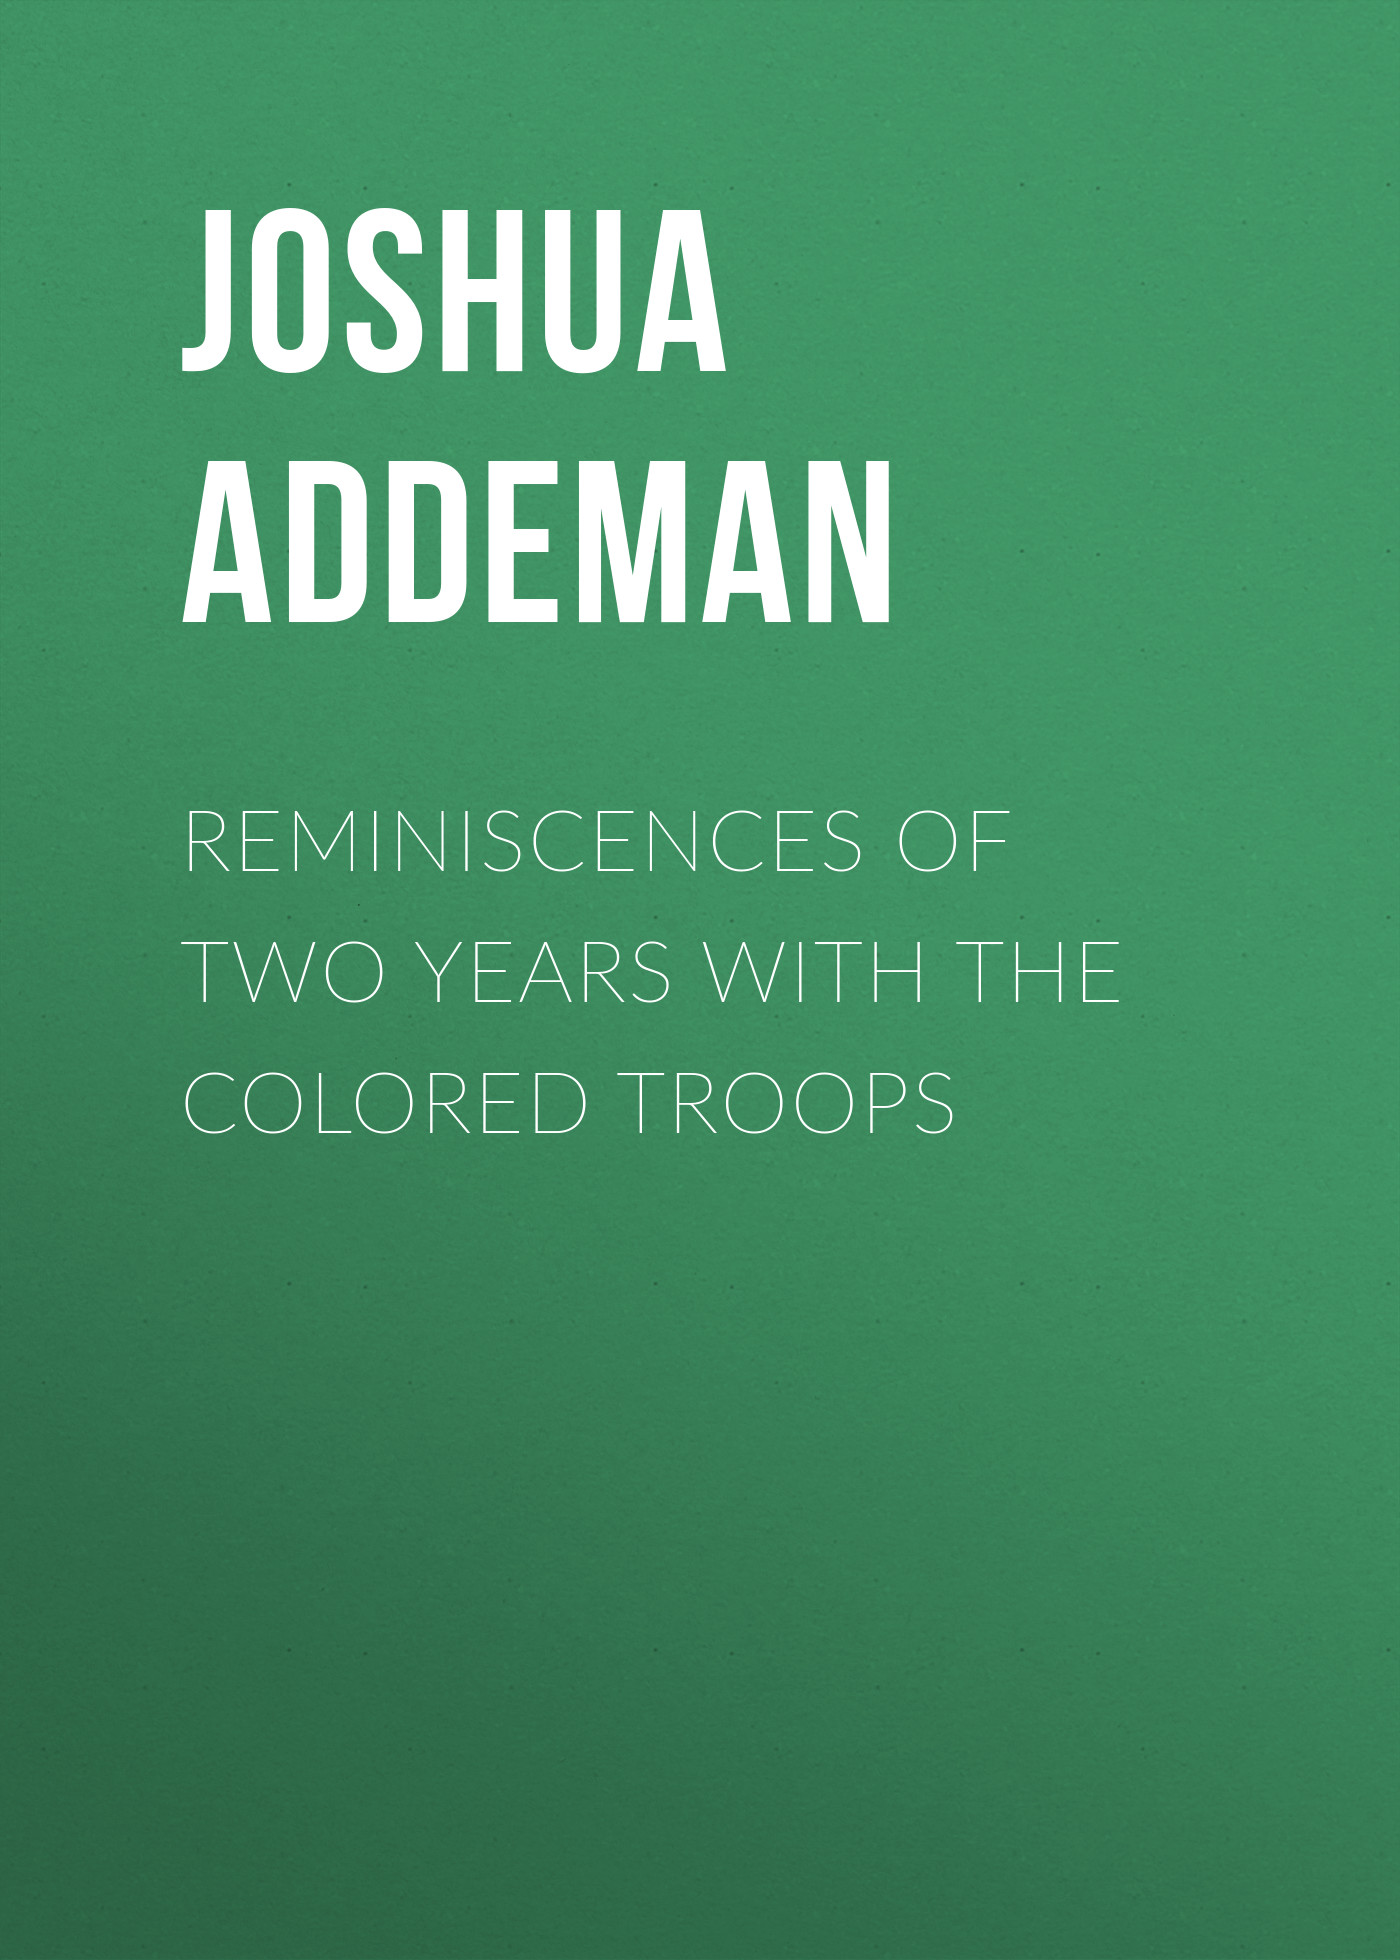 Addeman Joshua Melancthon Reminiscences of two years with the colored troops joshua jaya prasad ci engine operation with neat mahua methyl ester along with egr